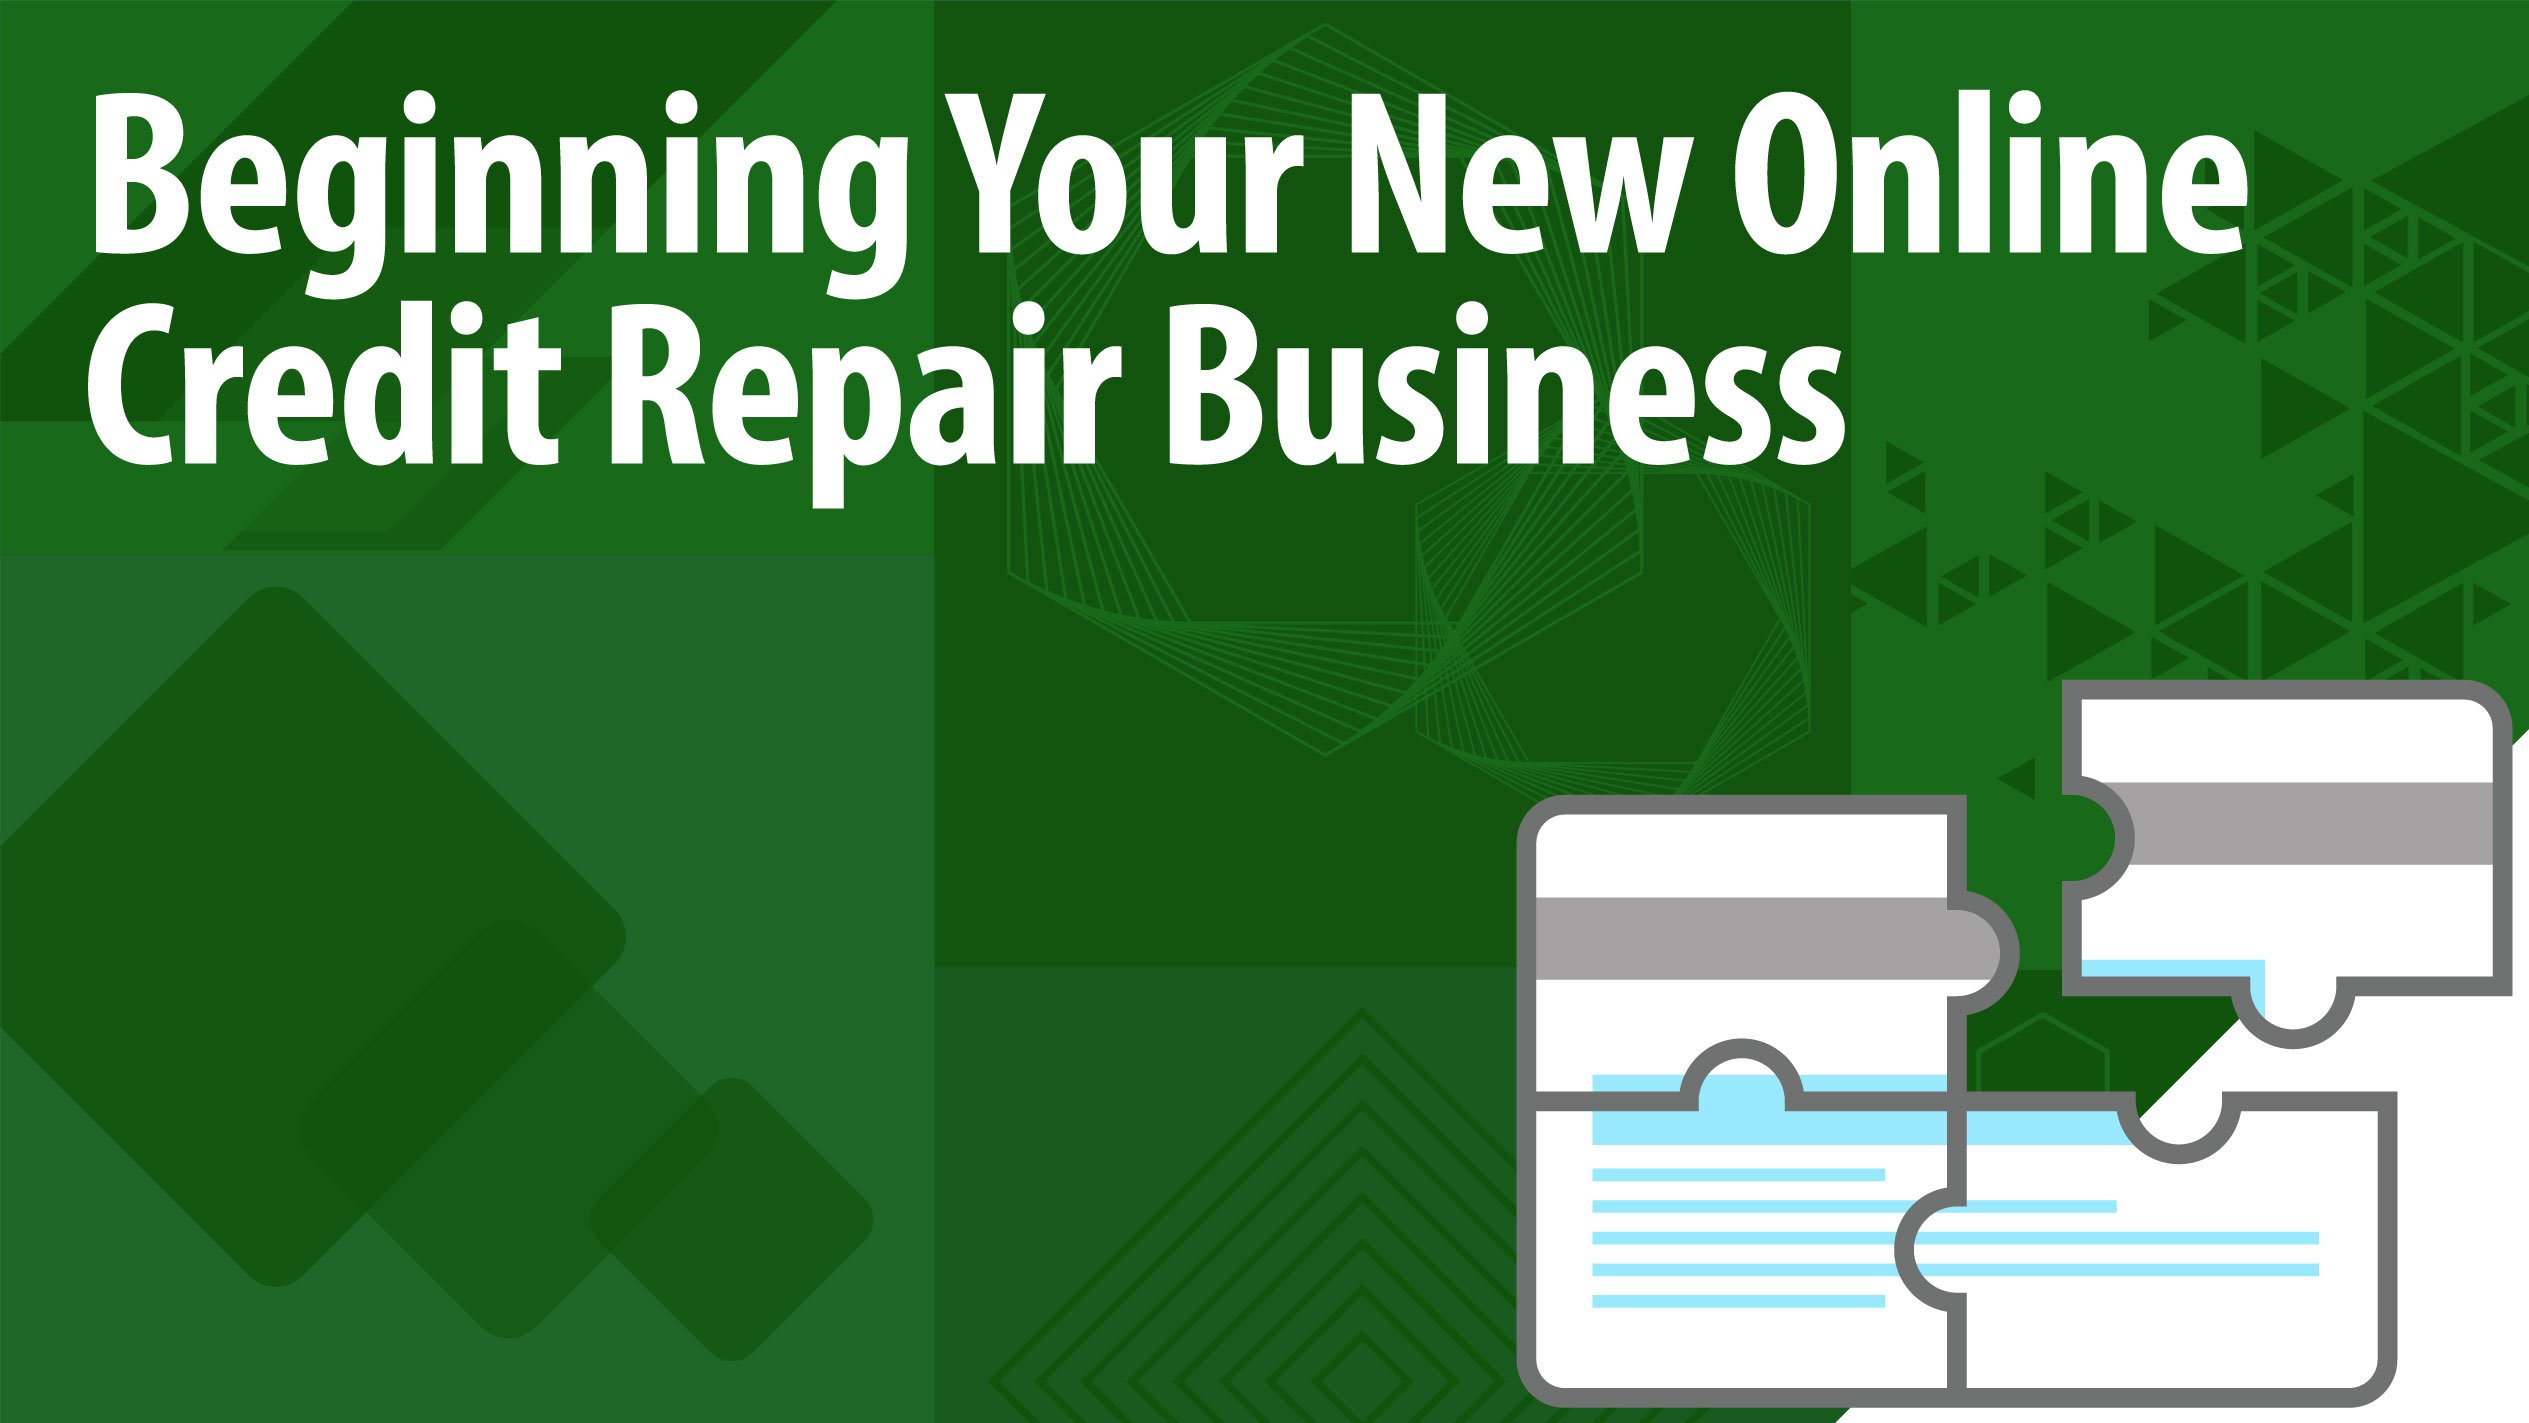 Beginning Your New Online Credit Repair Business